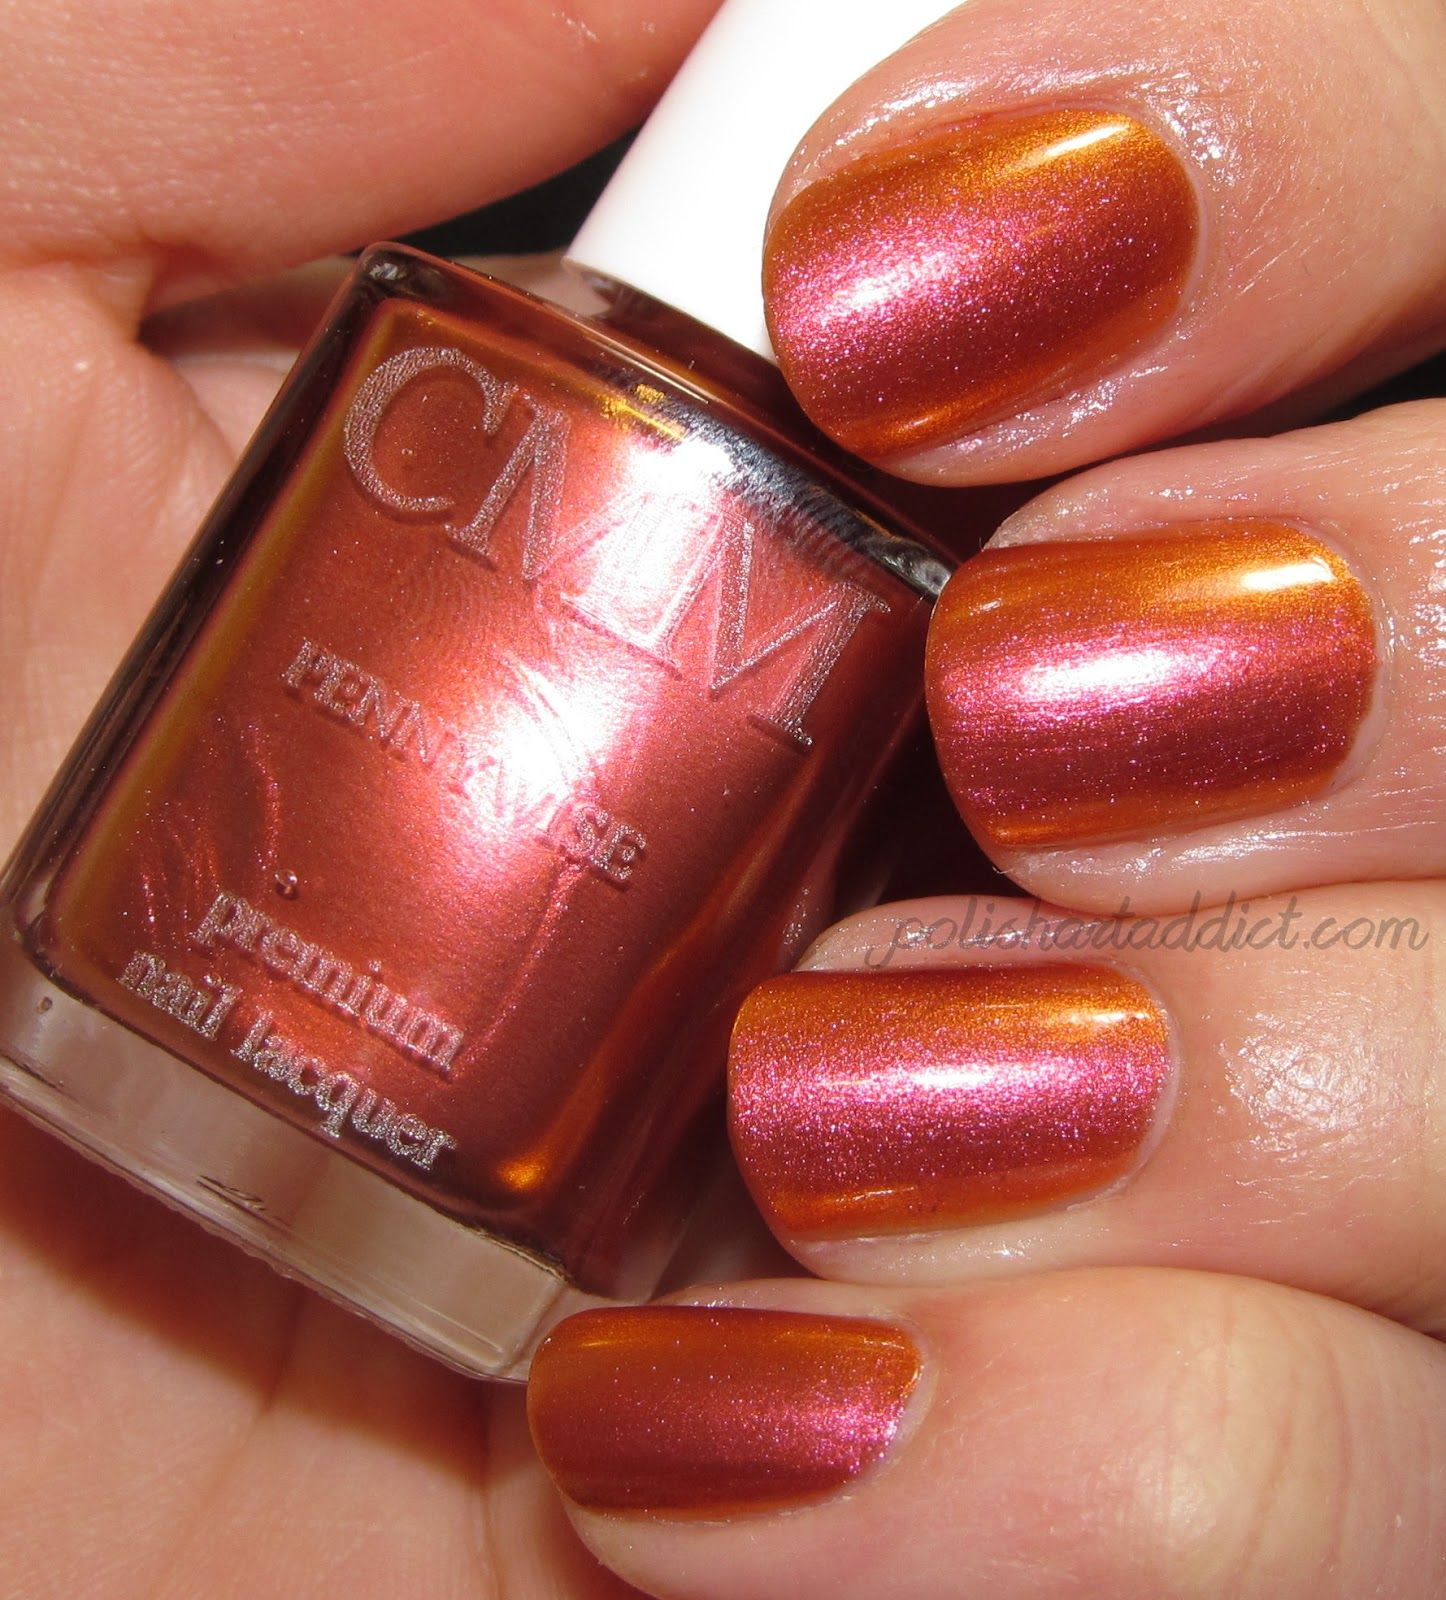 Color me monthly is an interesting and simple nail polish